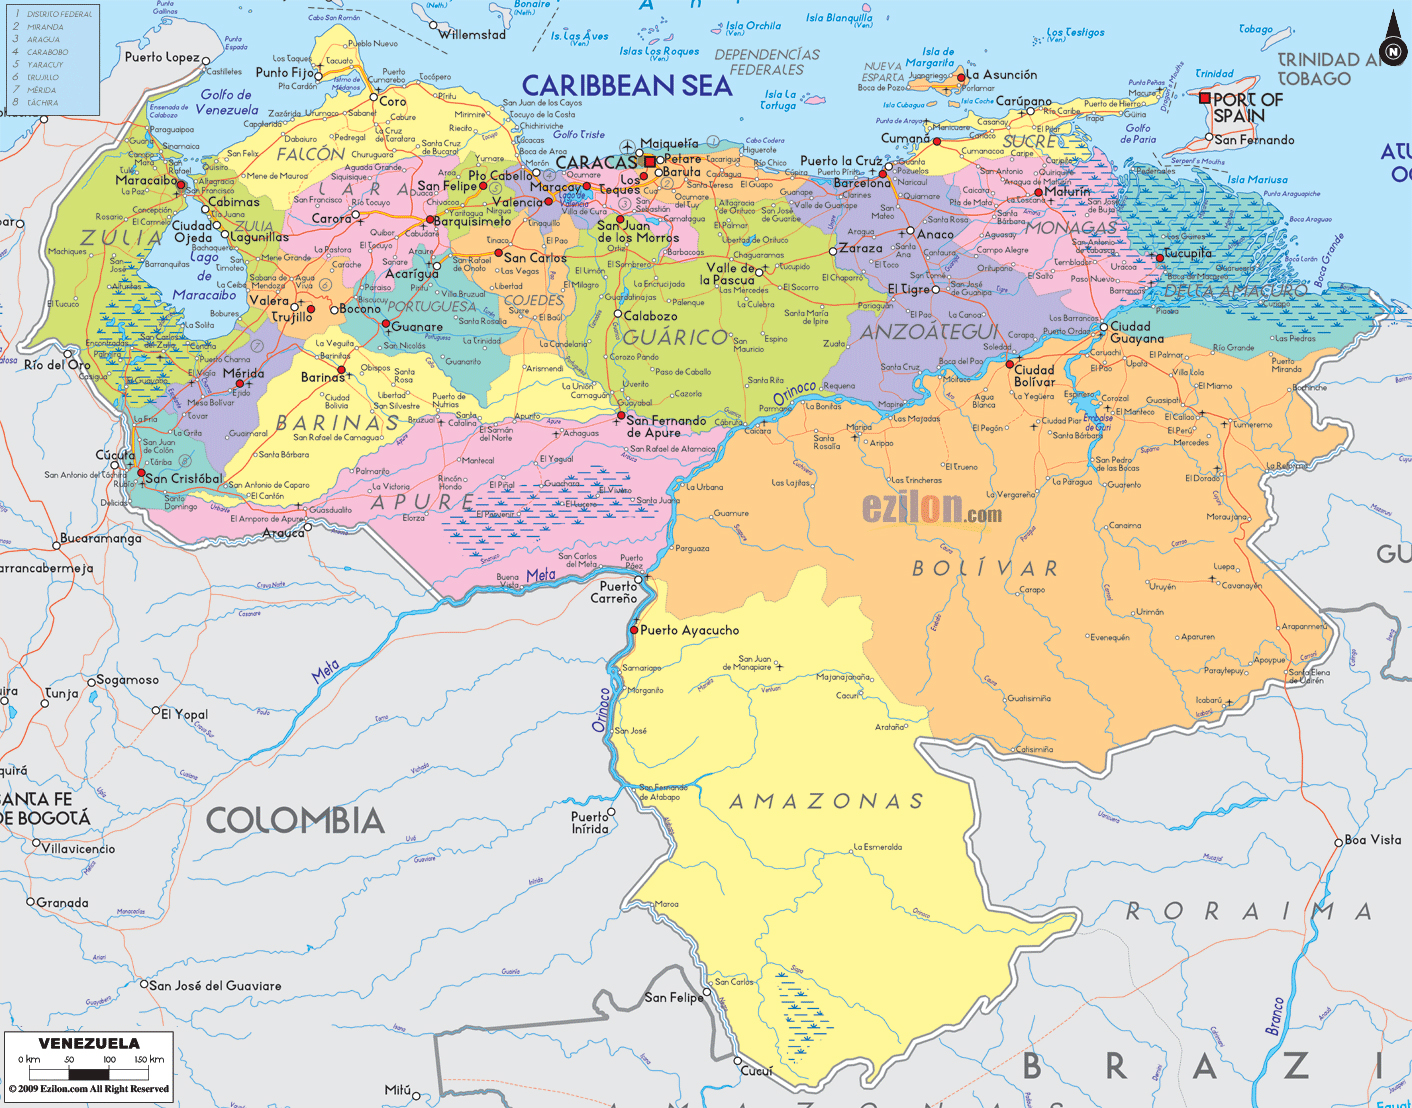 Map Of South America Free Large Images Backpacking Pinterest - Amazon river map of south america